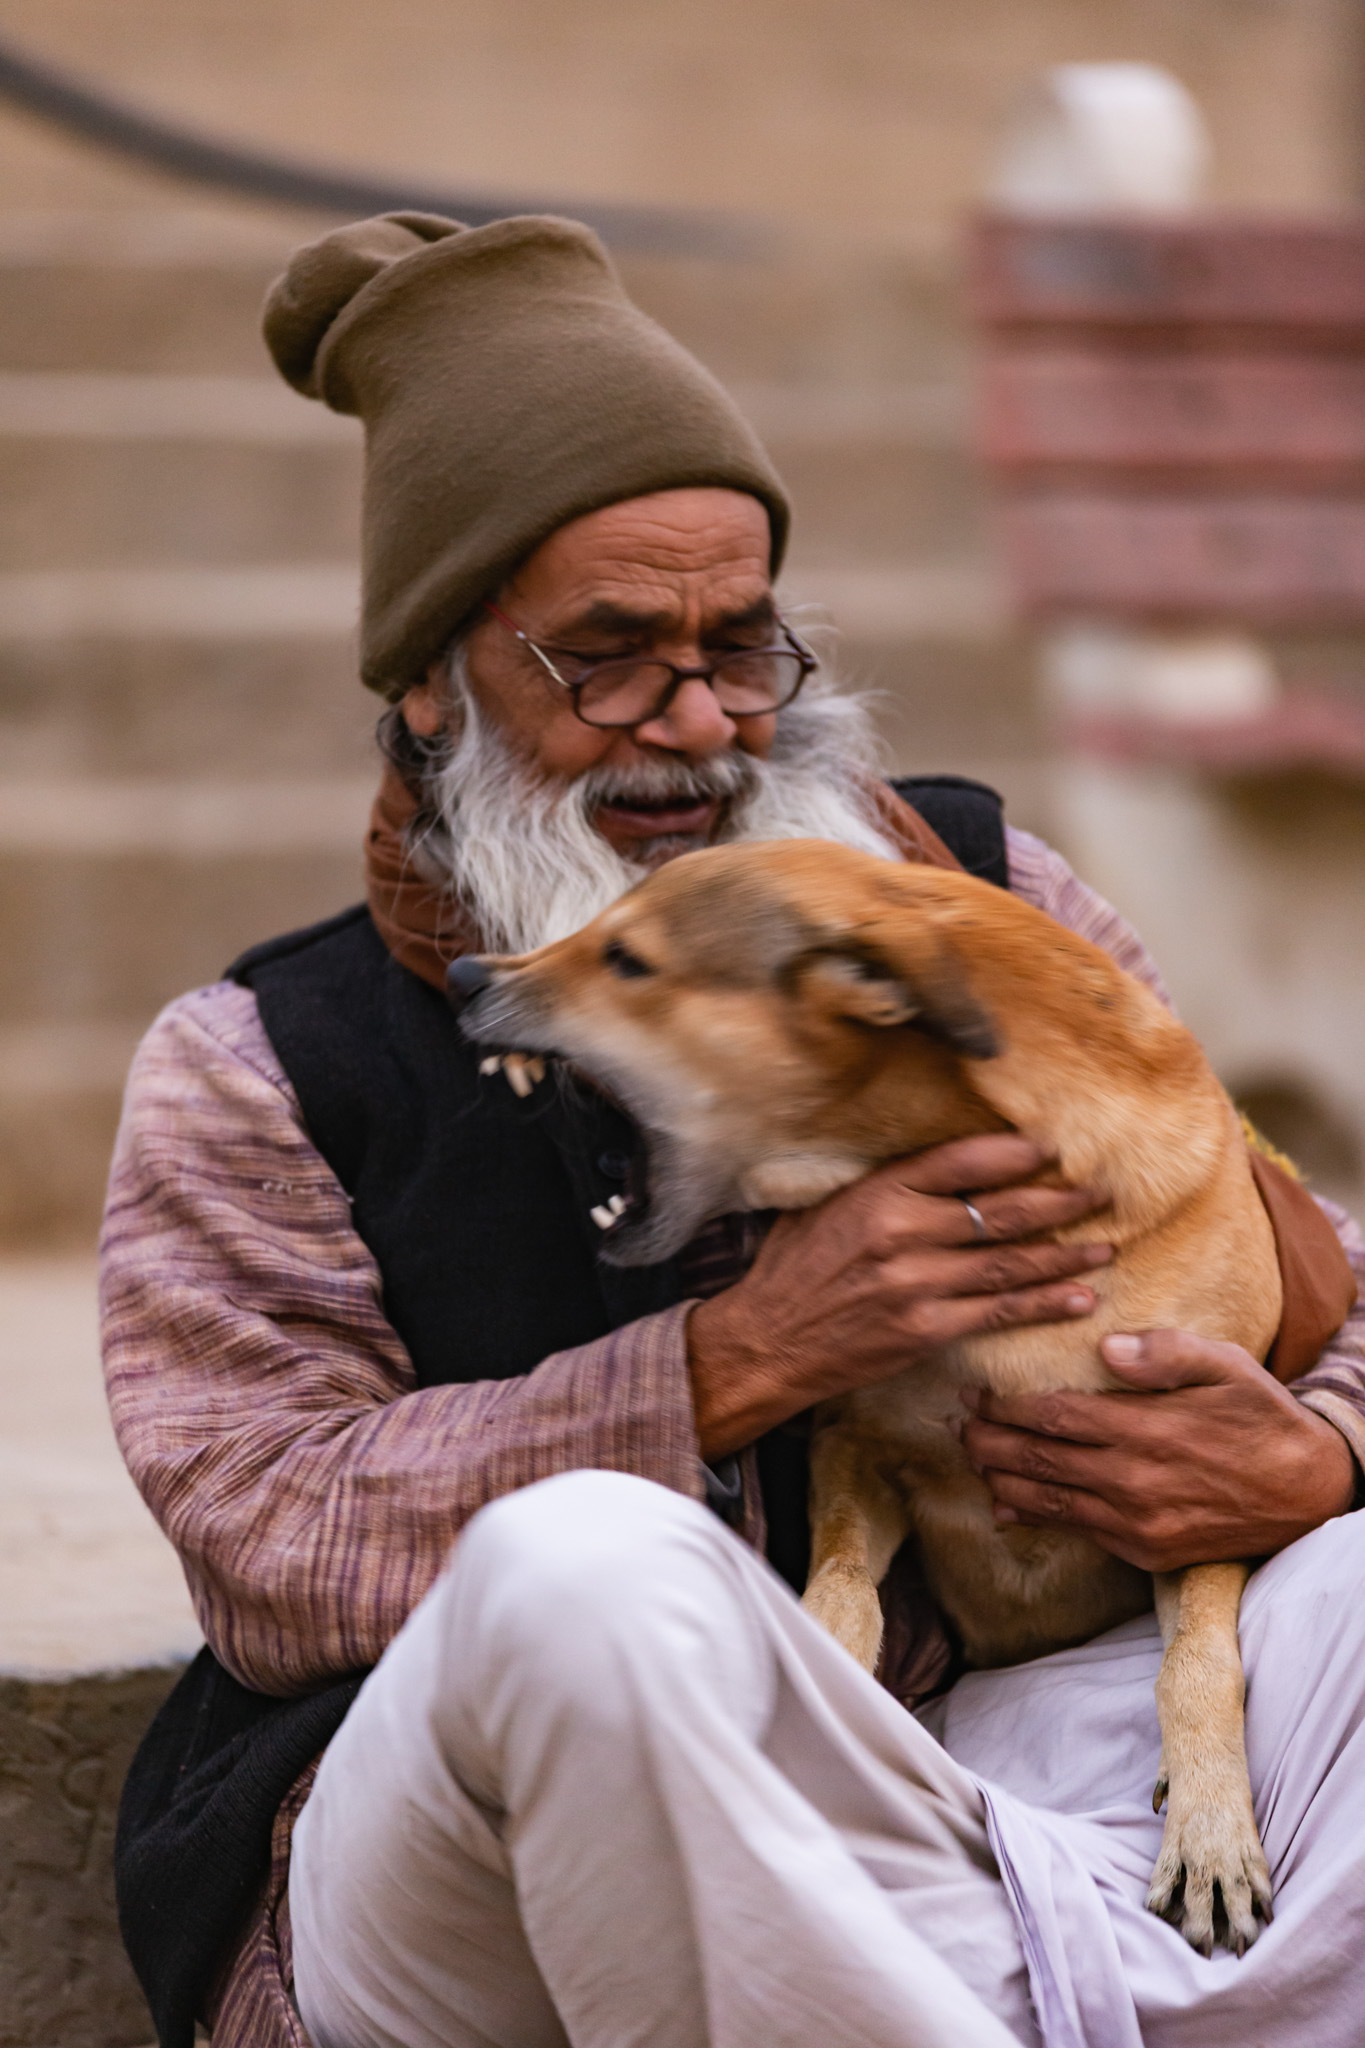 Indian man holds aggressive dog.